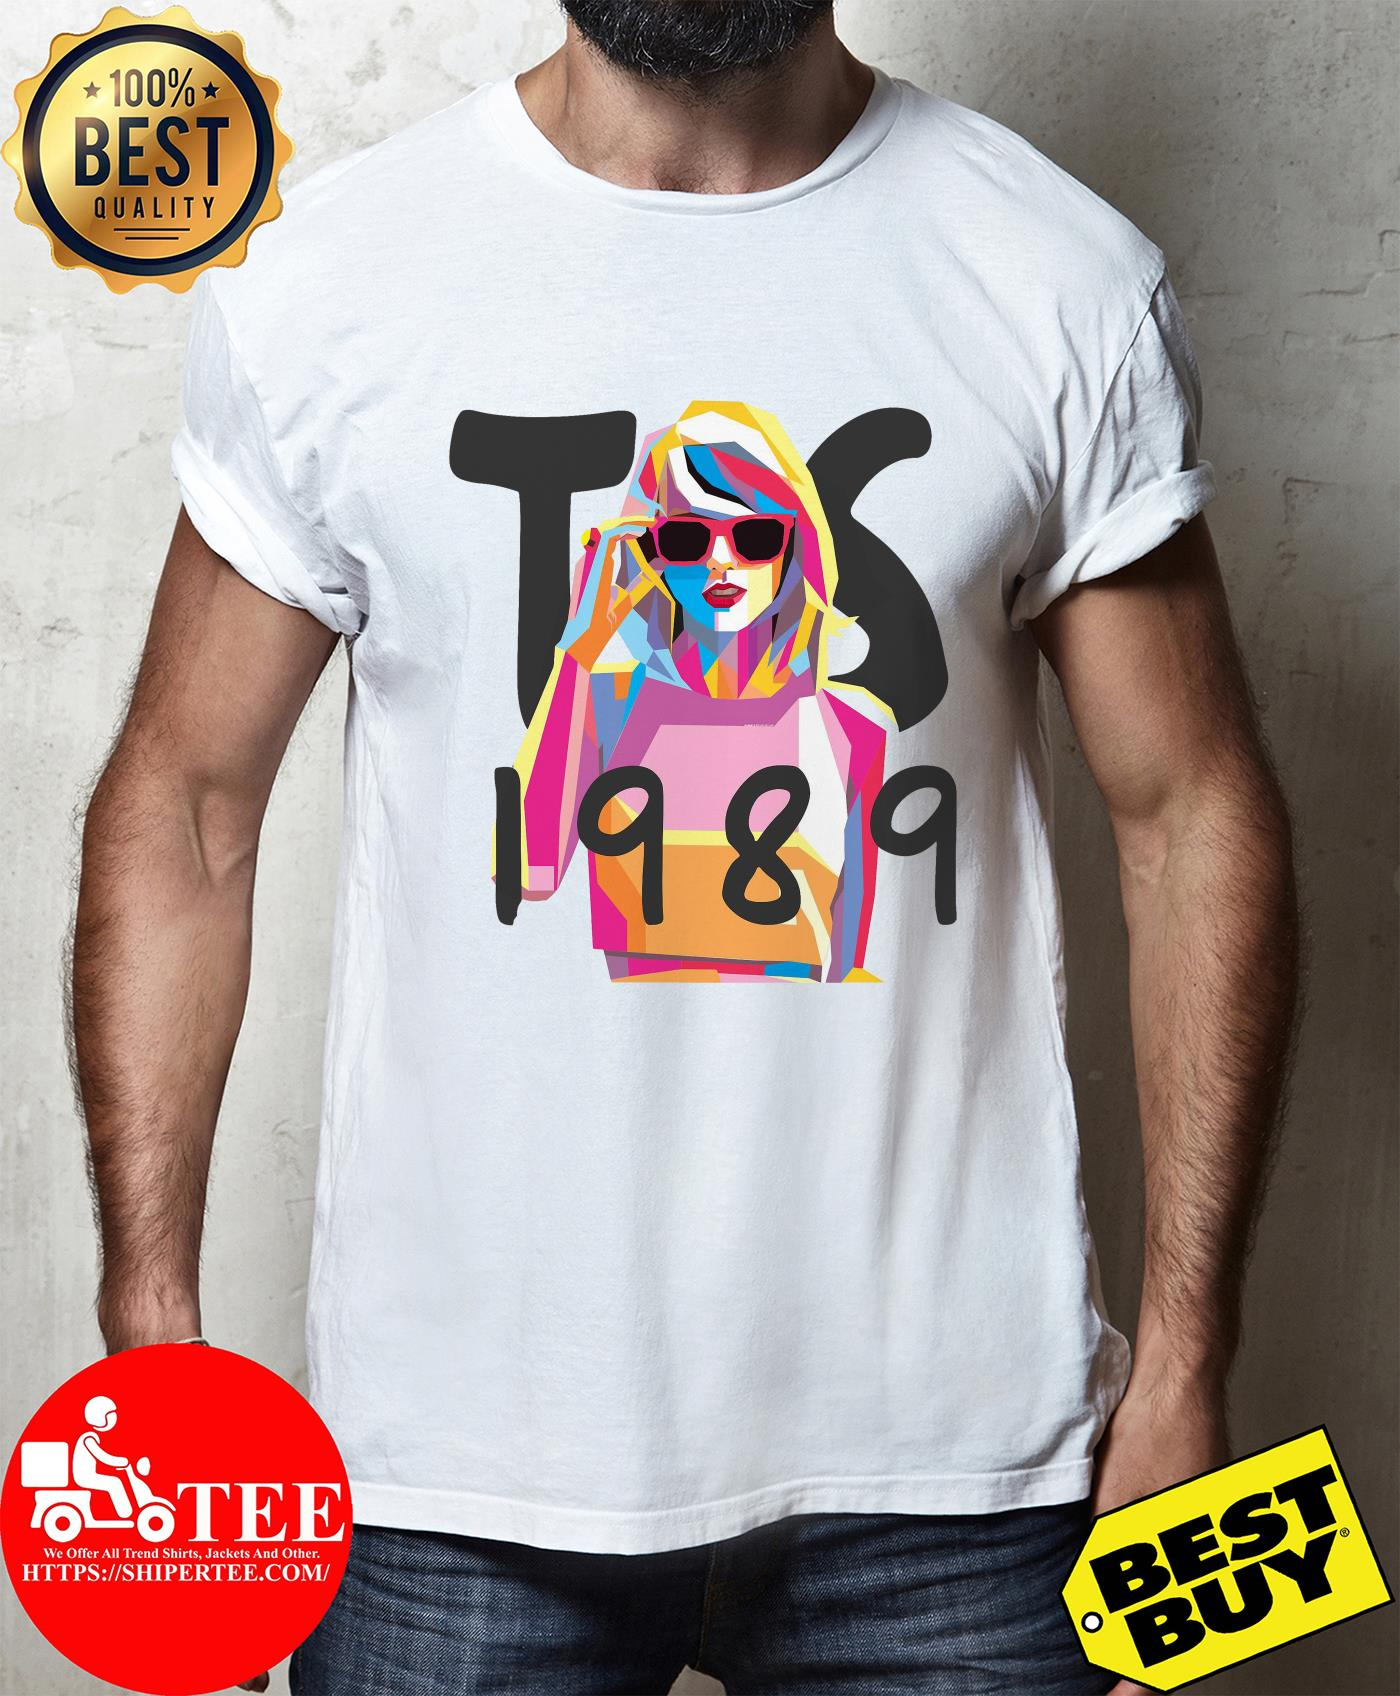 Women Casual Fashion Taylor Swift 1989 ladies tee